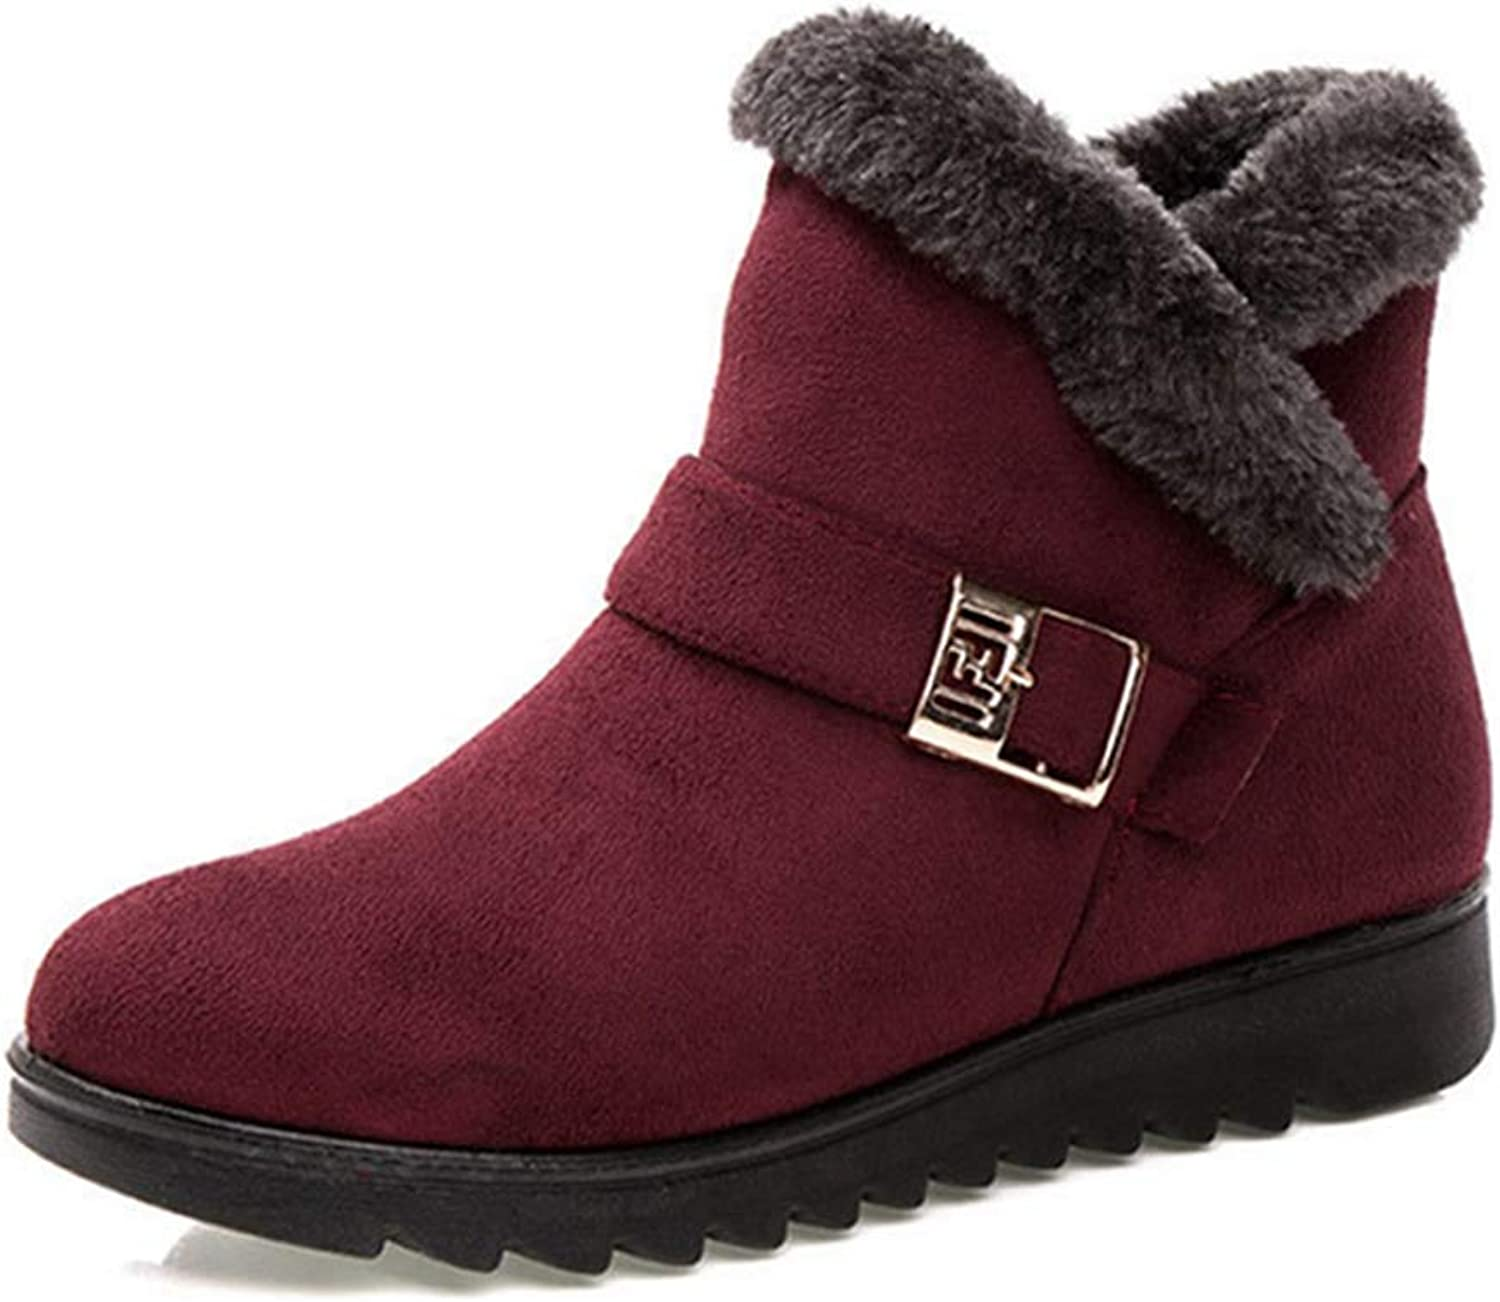 Fay Waters Women Cute Warm Short Boots Fur Chunky Mid Heel Round Toe Winter Snow Ankle Booties